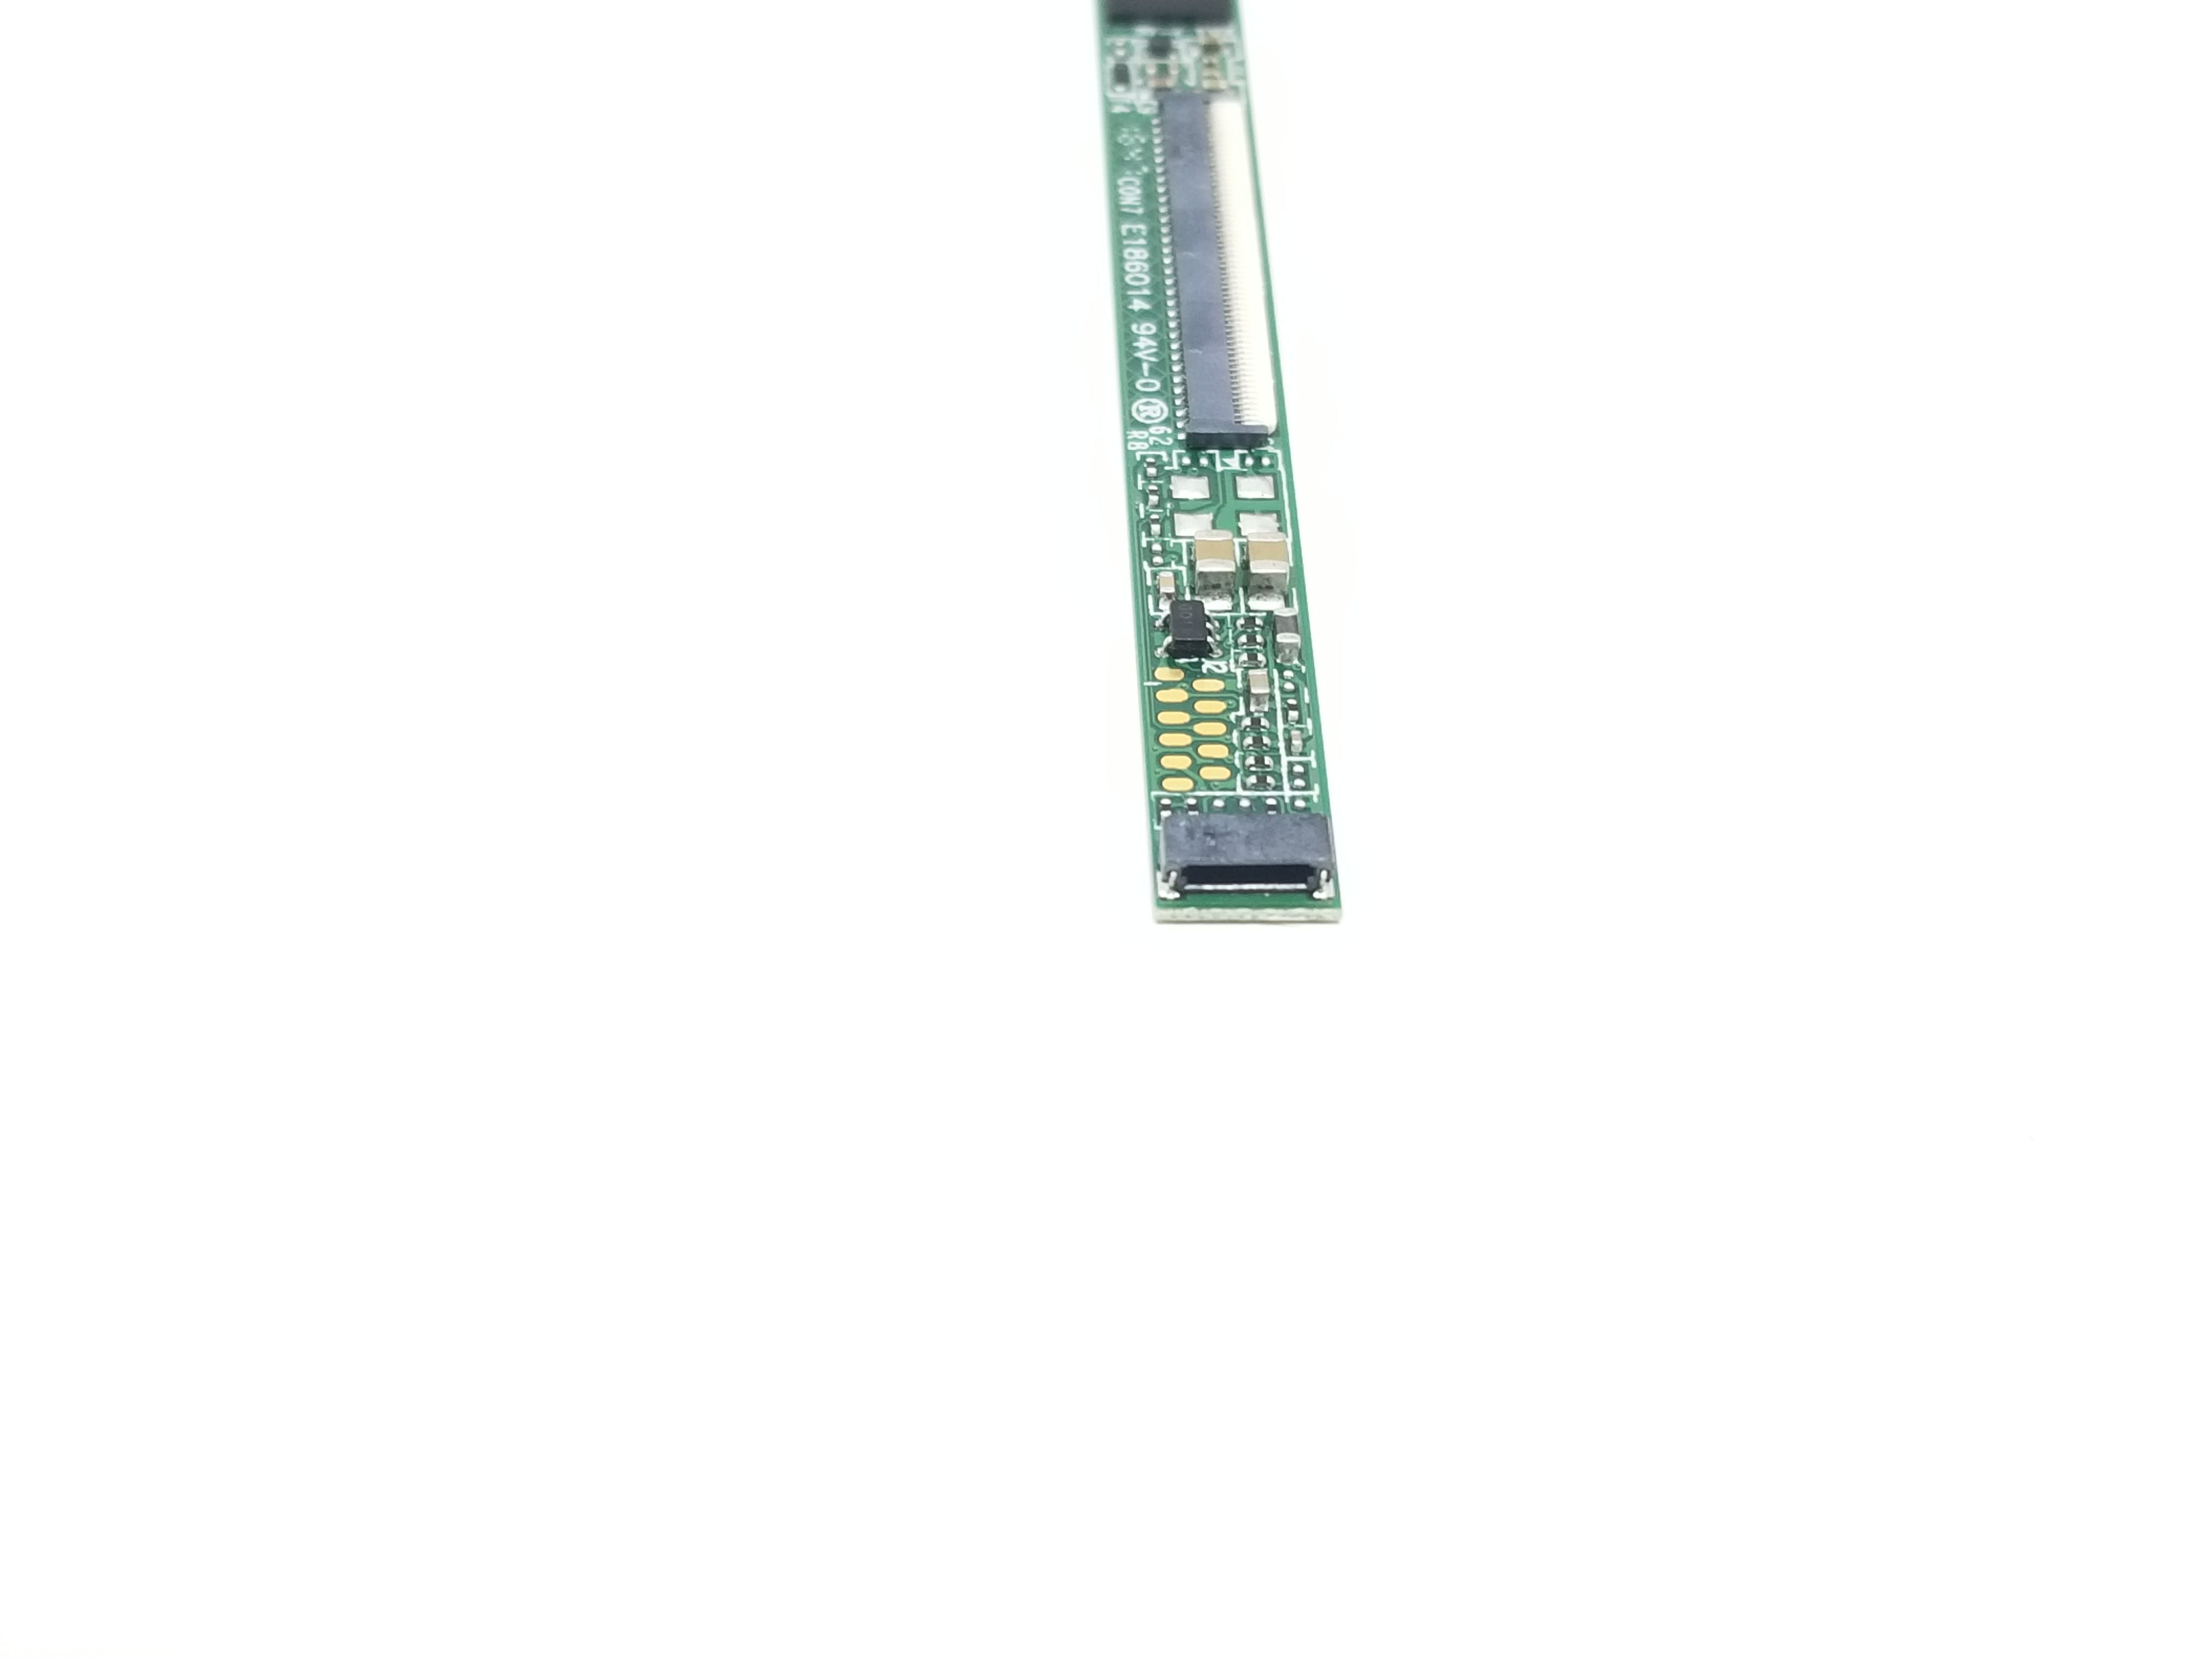 Acer Chromebook 13 CB5-312T Digitizer / Touch sensor board - 767000233